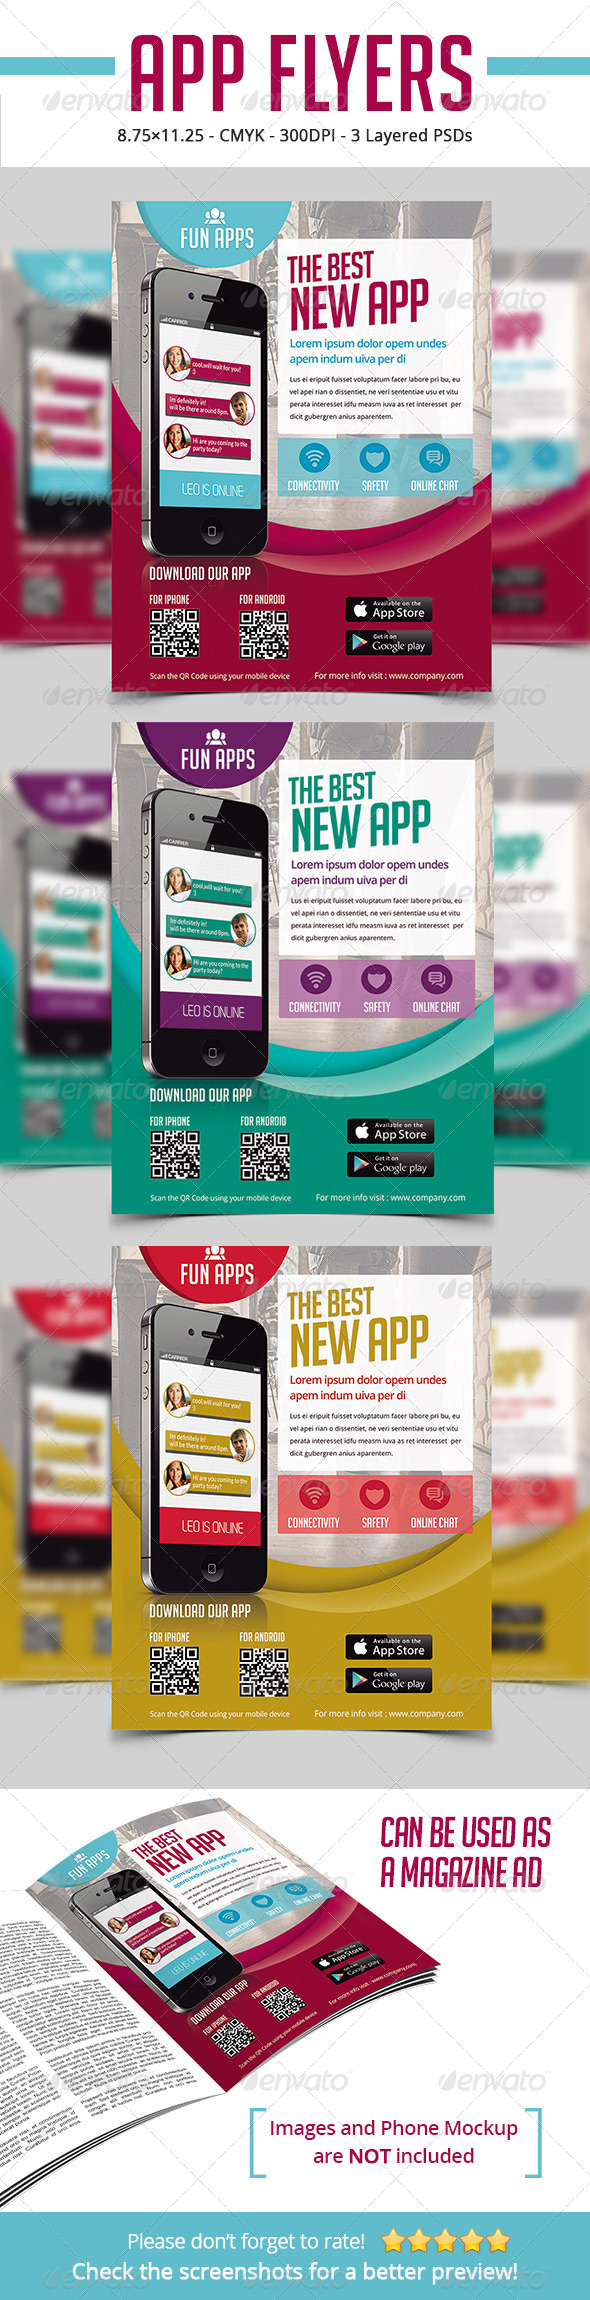 GraphicRiver App Flyers Magazine Ads 6720436